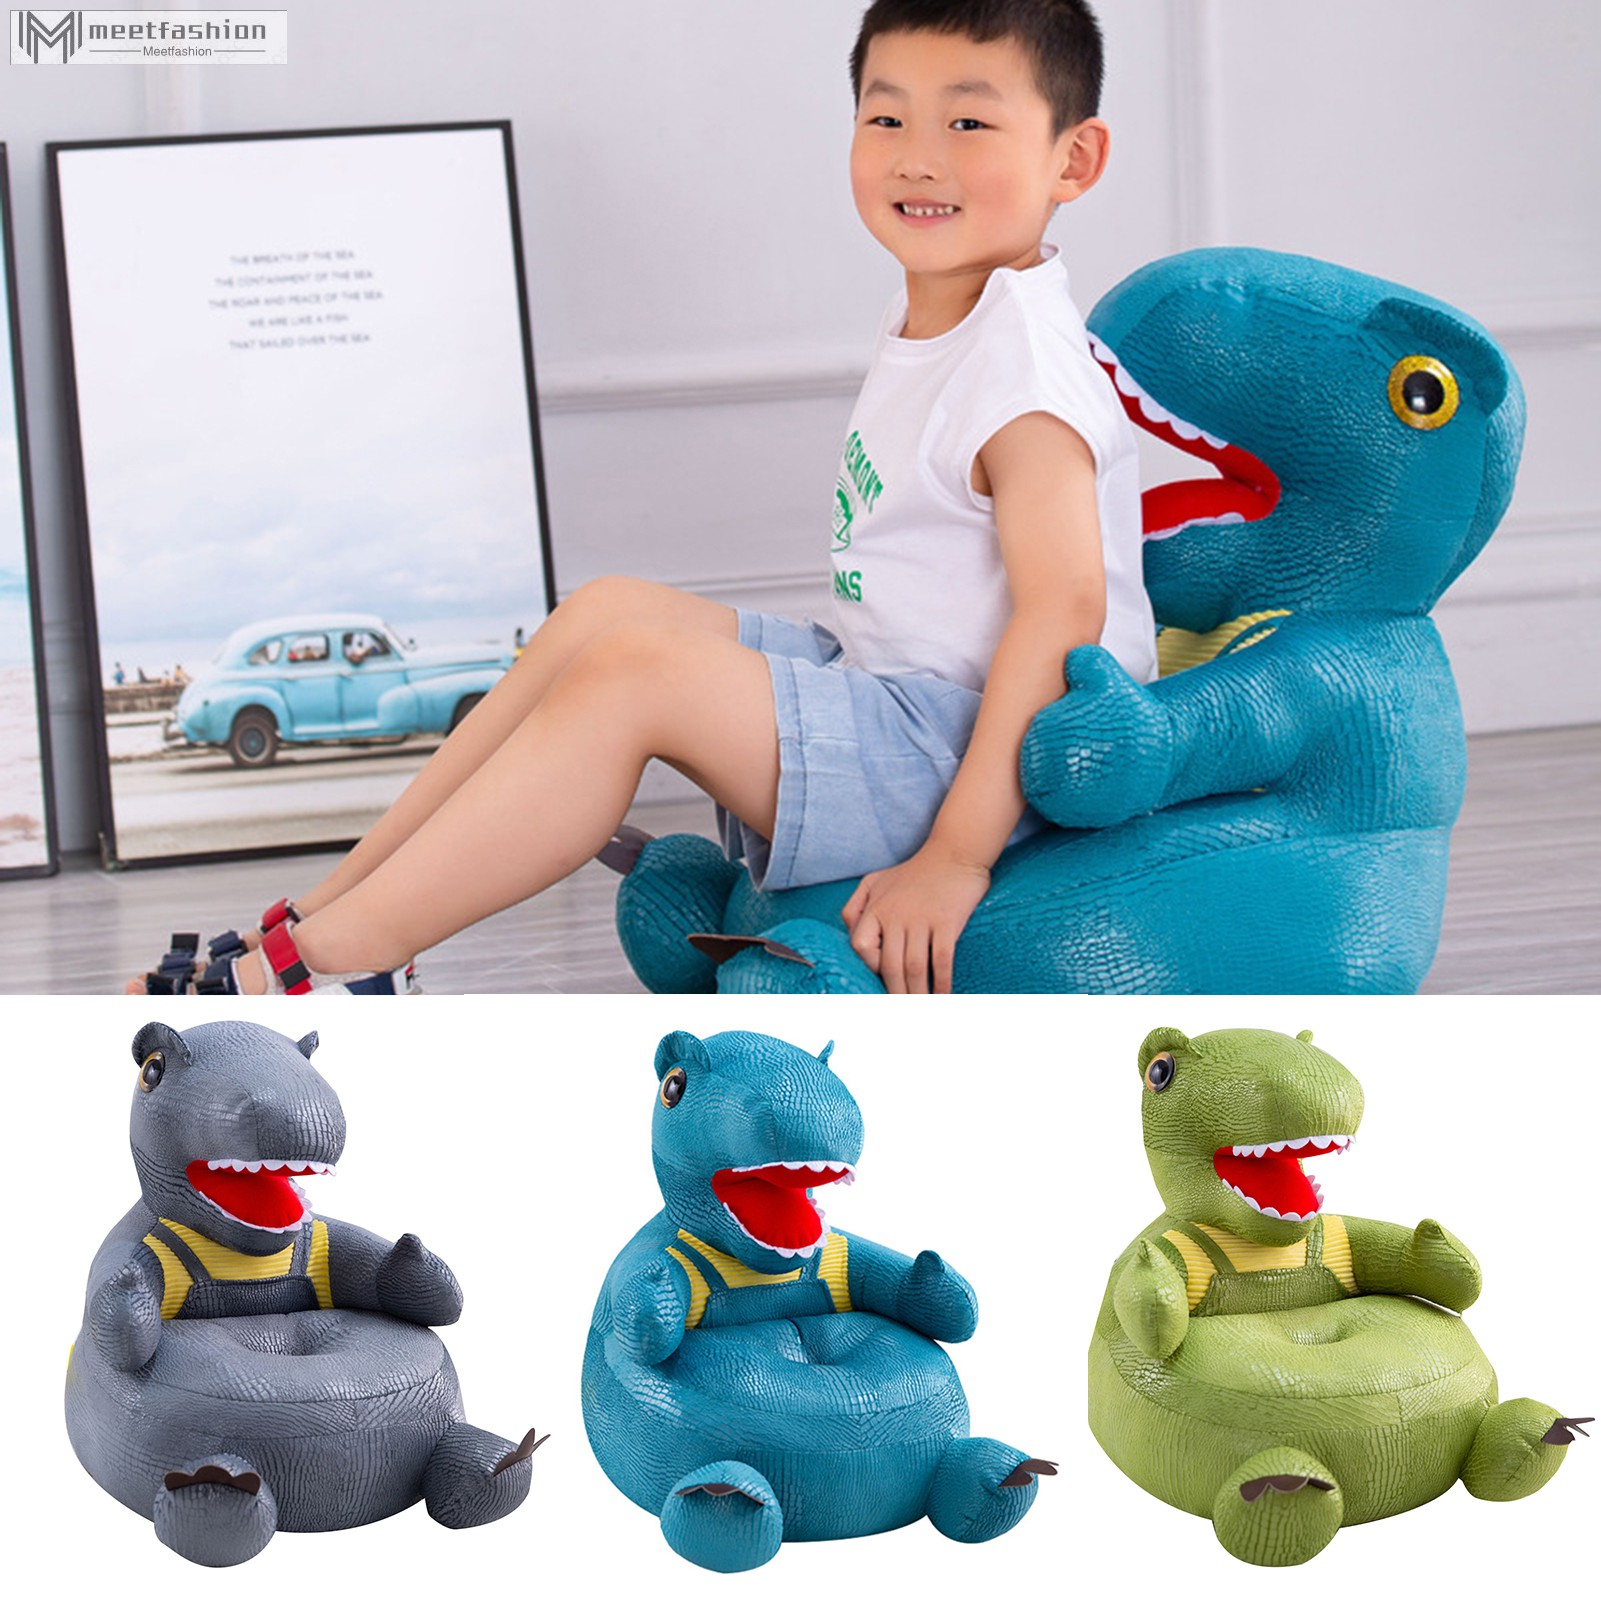 Dinosaur-shaped Plush Kids Sofa Cartoon Figure Soft Floor Chair Toy with Backrest & Armrest for Toddler Learning to Sit